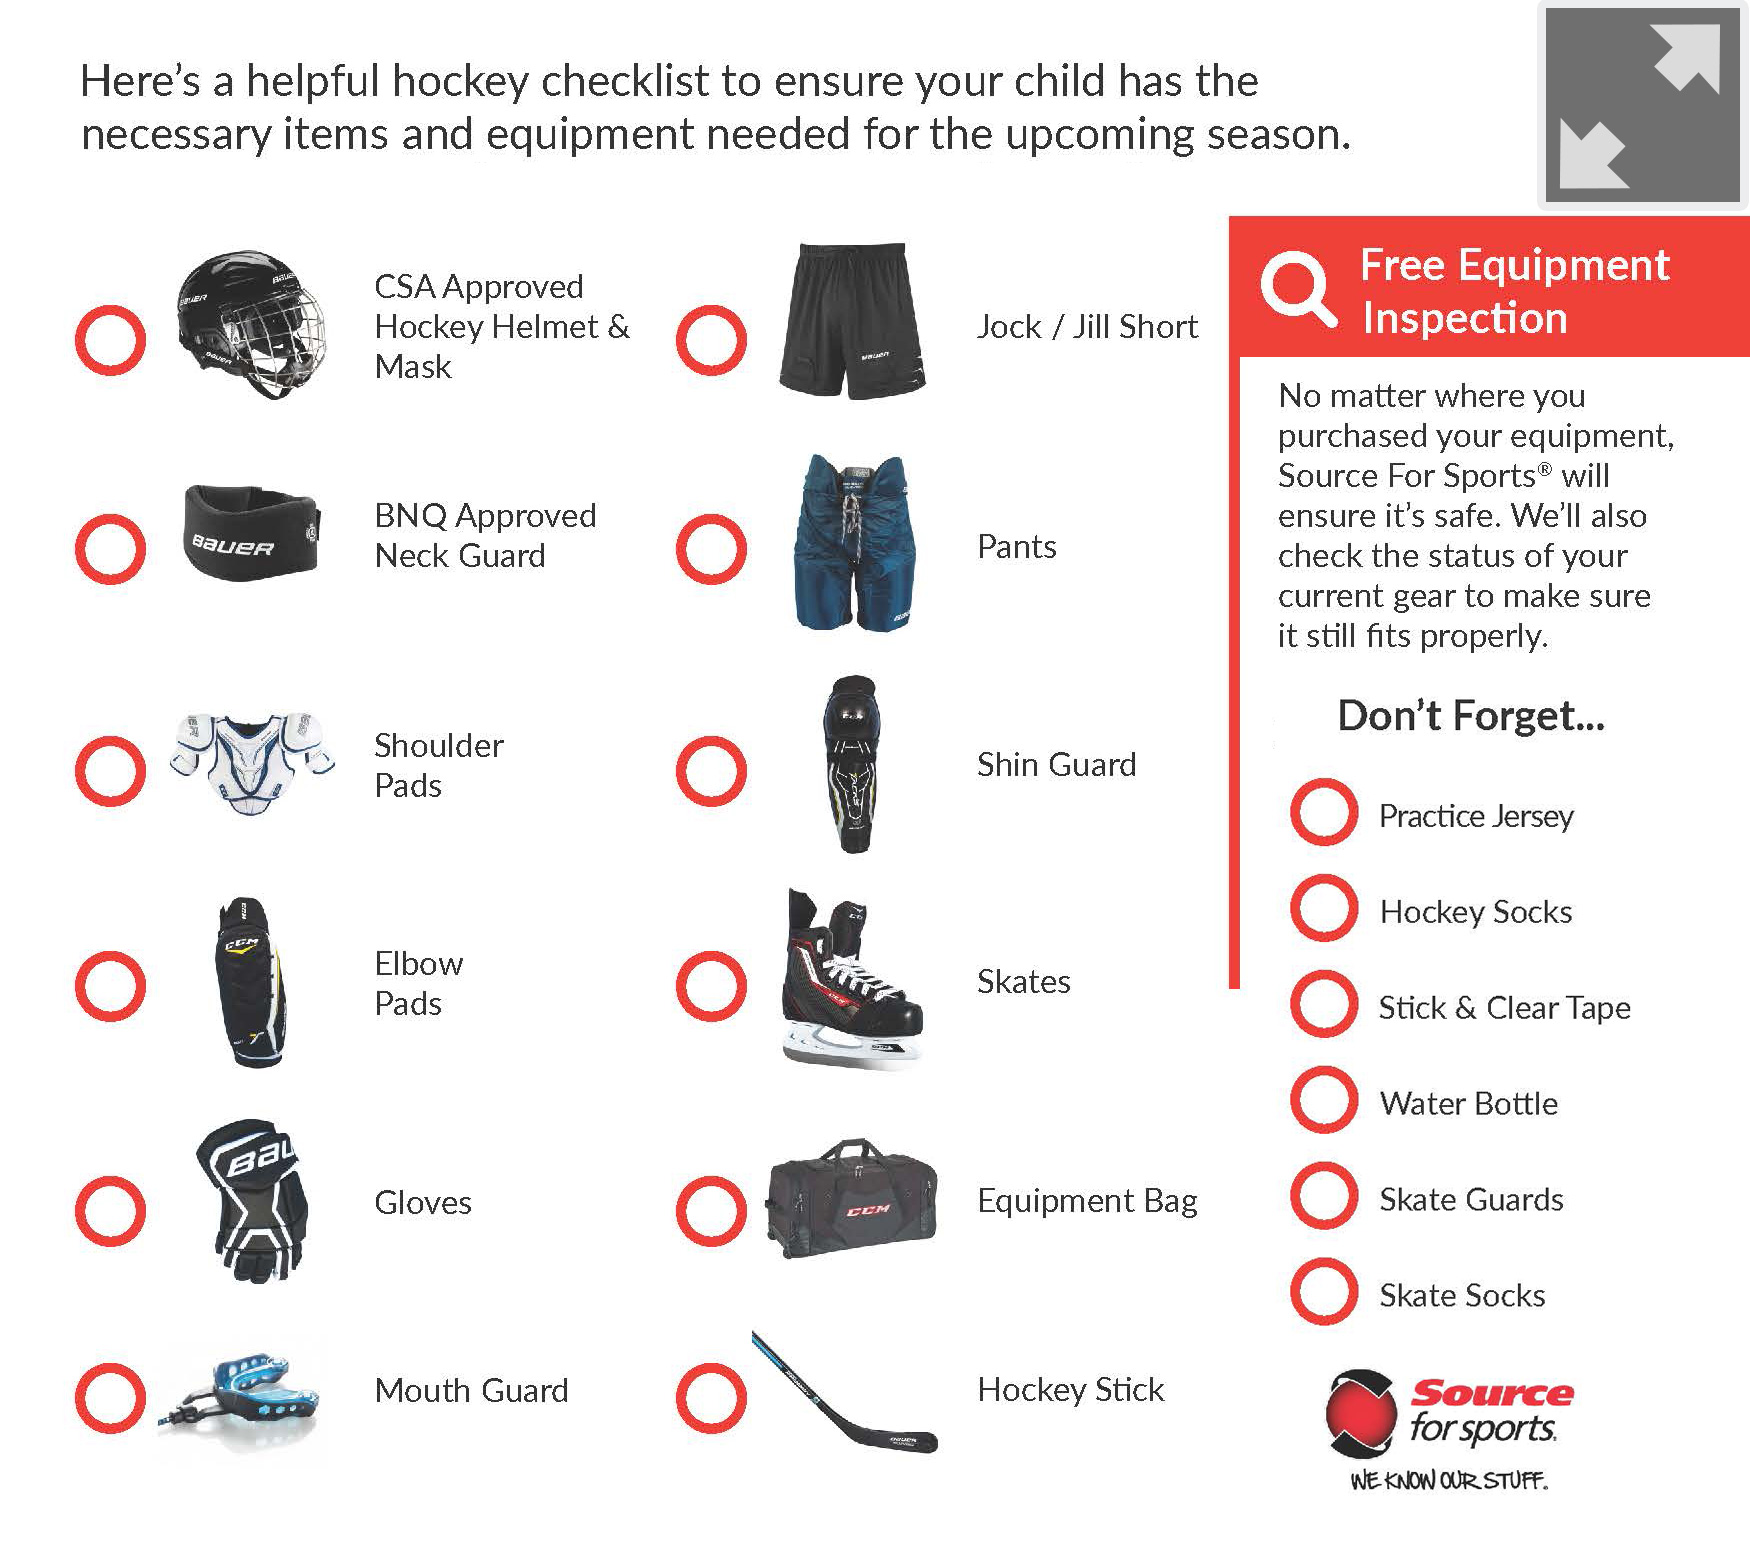 Hockey Equipment Checklist | Source For Sports